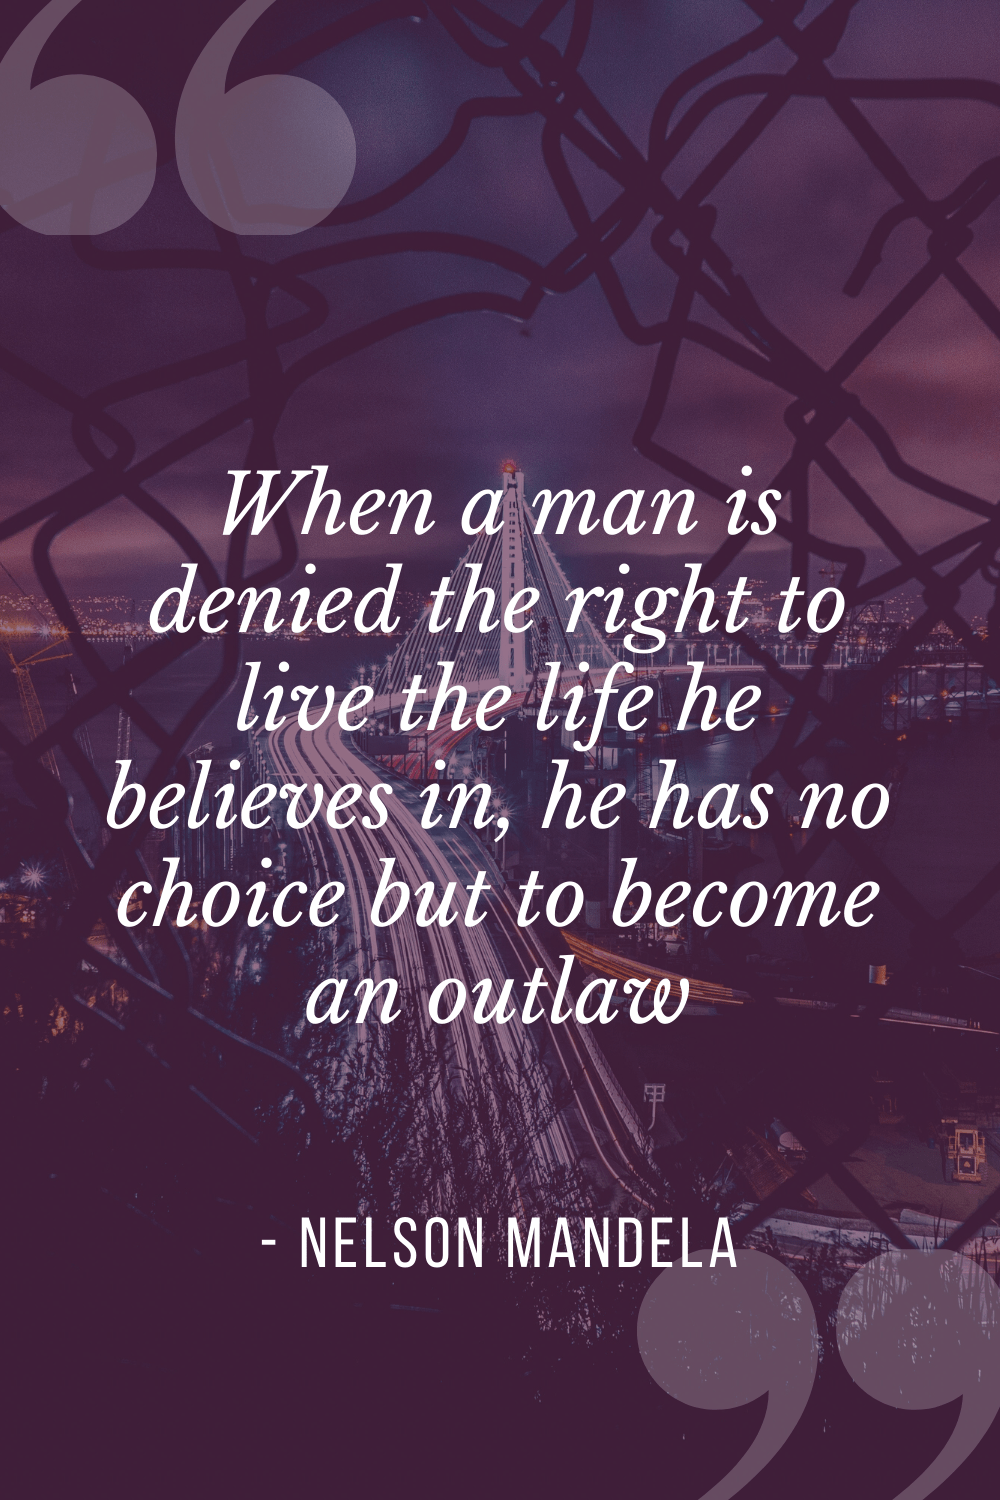 """When a man is denied the right to live the life he believes in, he has no choice but to become an outlaw"", Nelson Mandela"